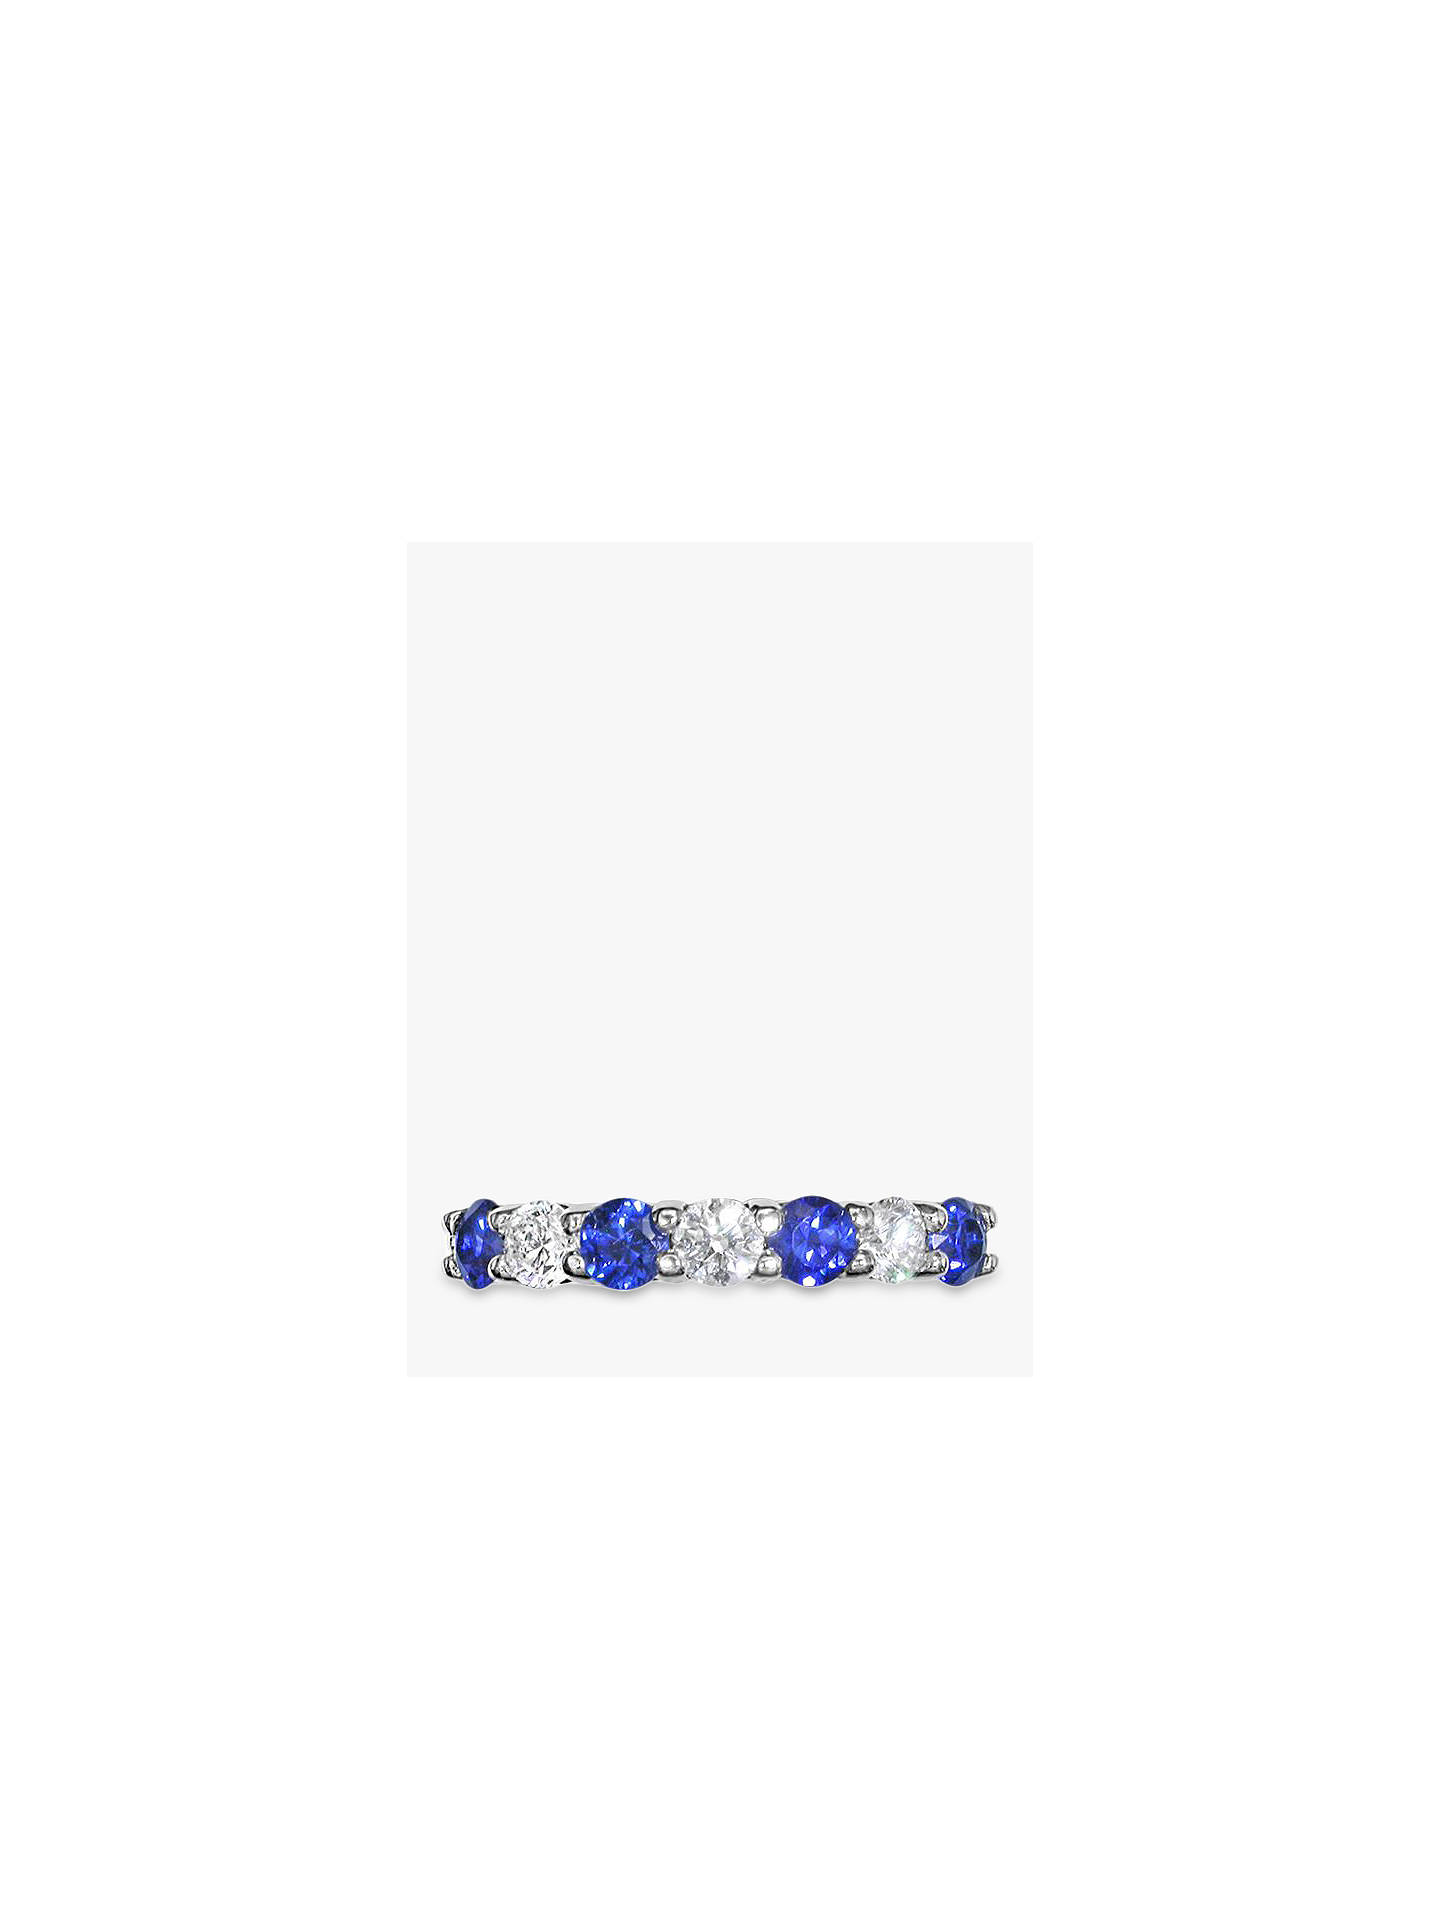 Buy E.W Adams 18ct White Gold Brilliant Cut Sapphire and Diamond Half Eternity Ring Online at johnlewis.com